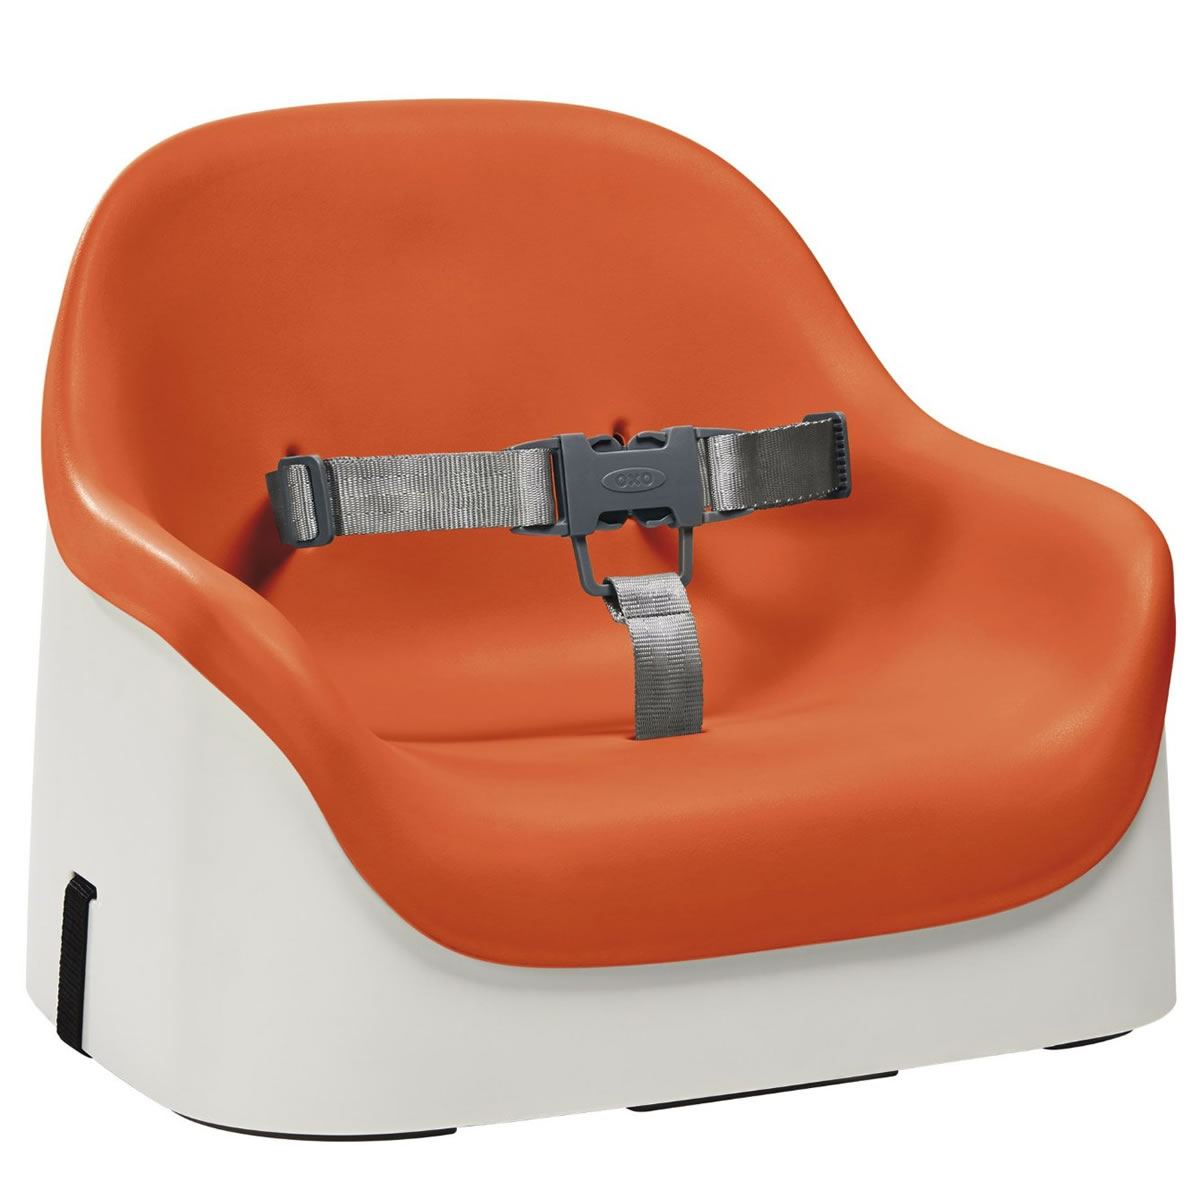 booster seat Read our in-depth review on the best booster seats available on the market today make sure you're getting the safest booster seat for your child.